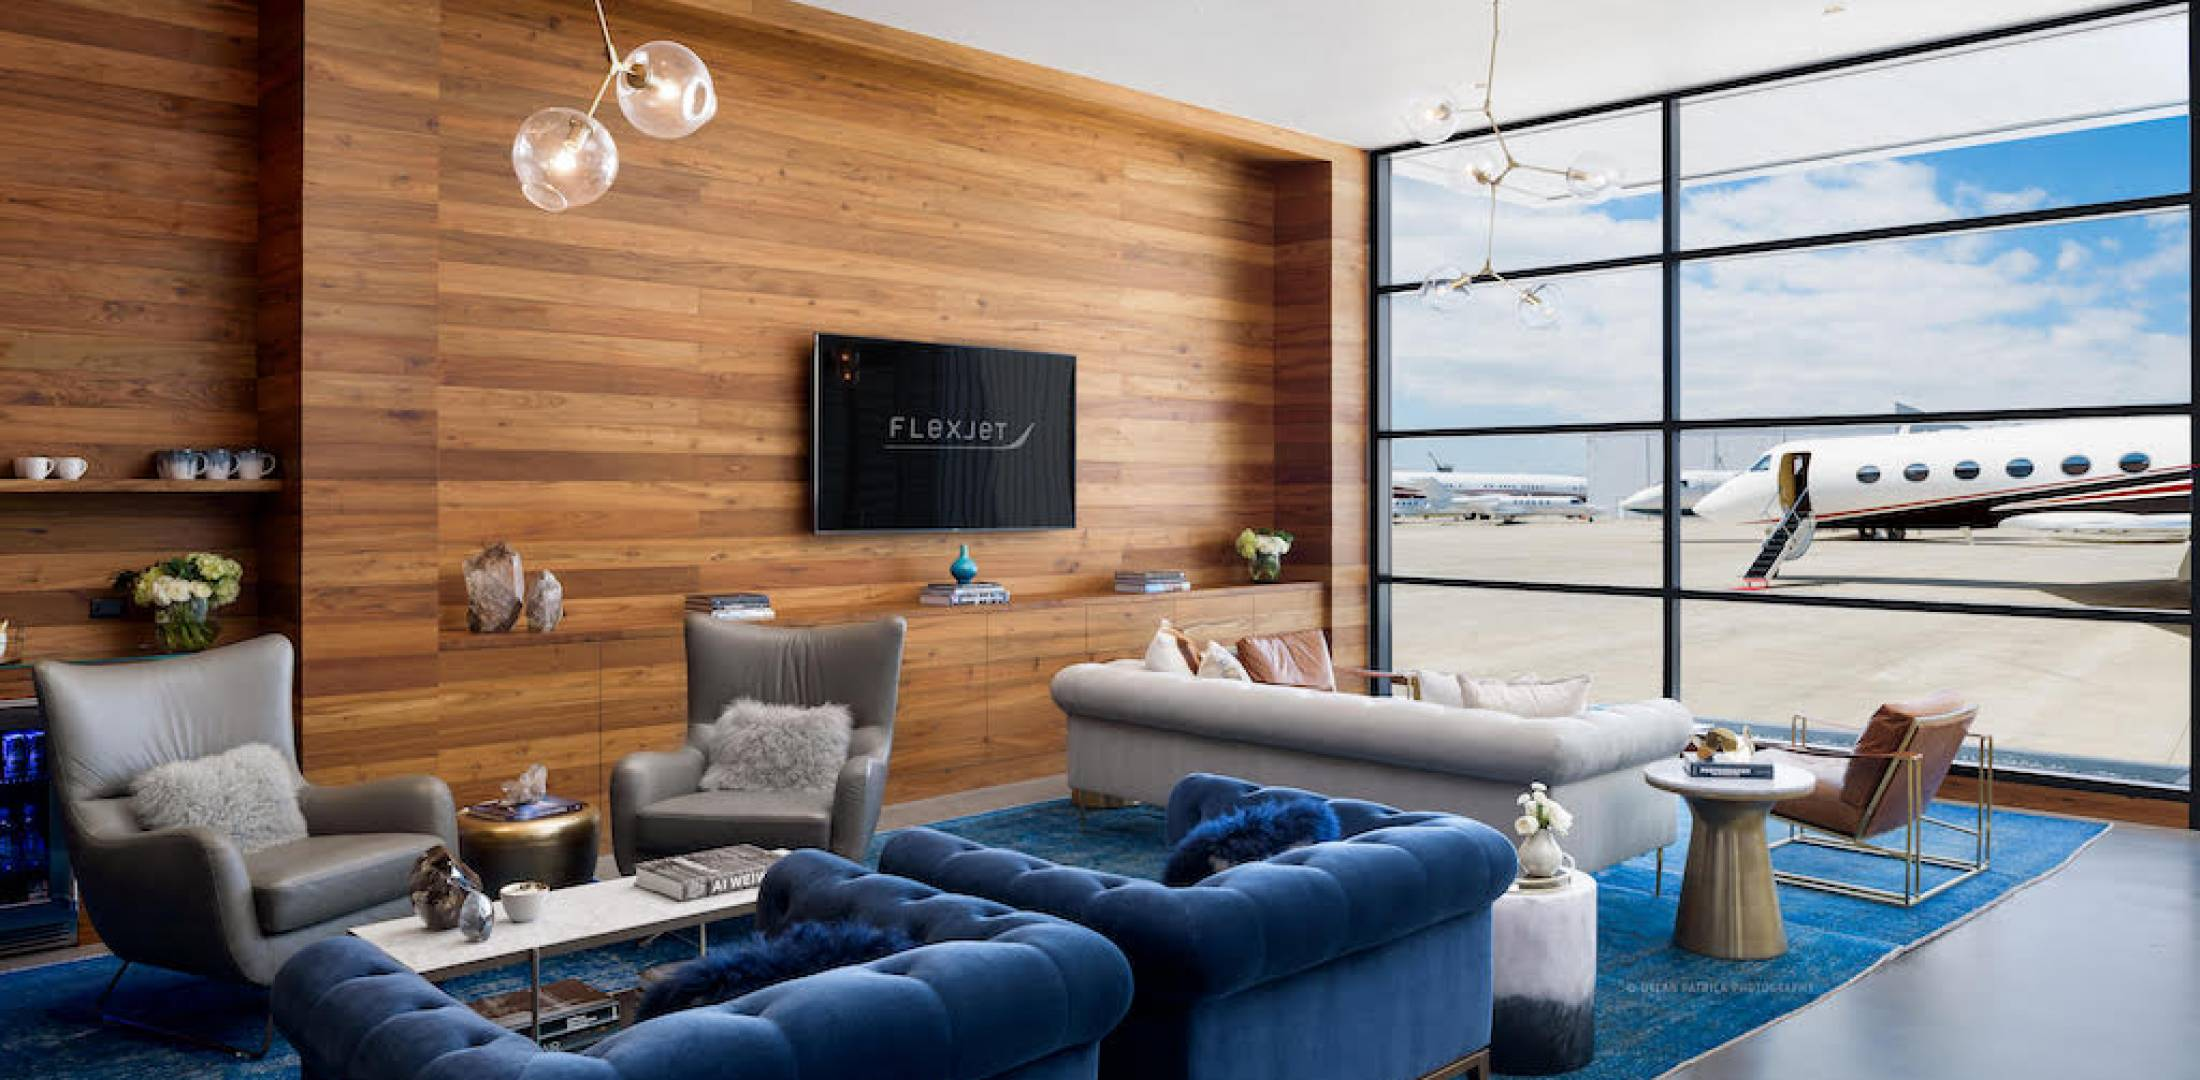 Flexjet lounge in Van Nuys (Photo: Flexjet)